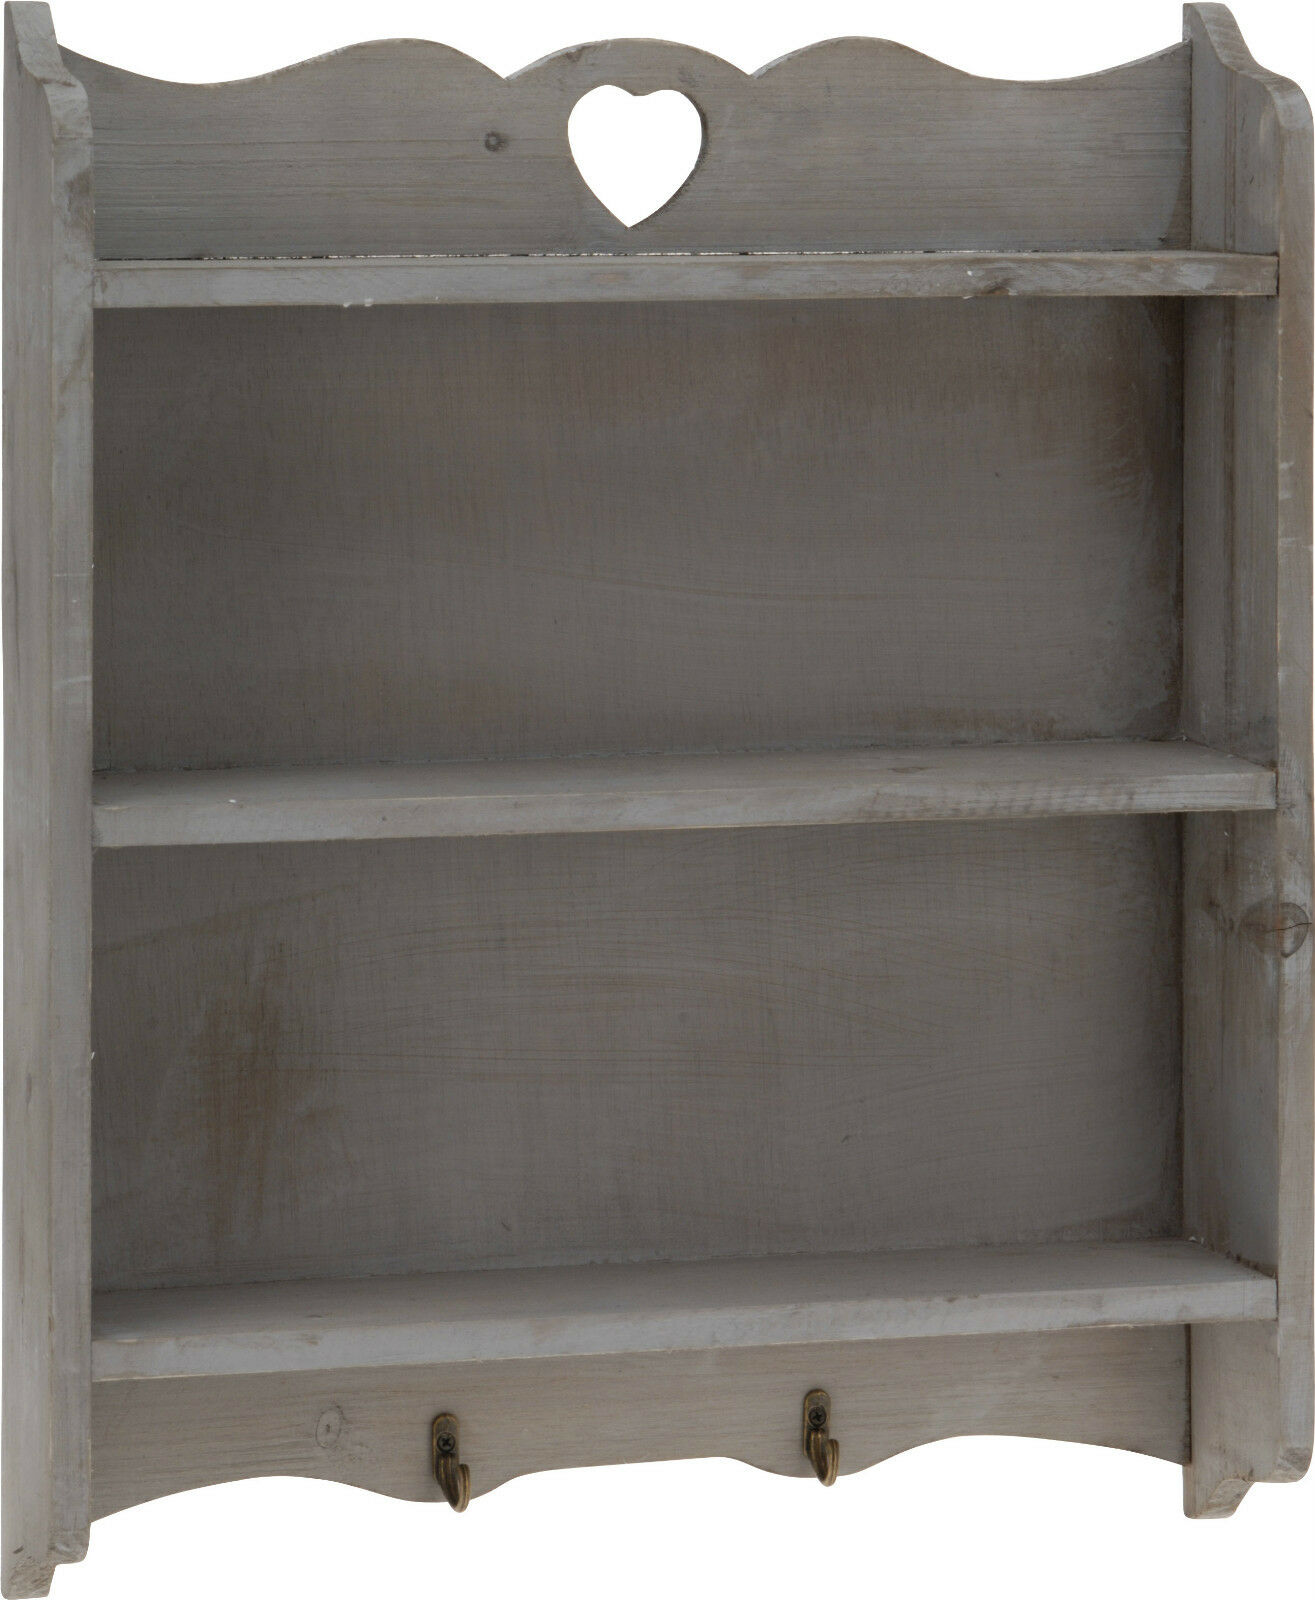 Tag re murale regal gris shabby used look maison de for Etagere murale style campagne